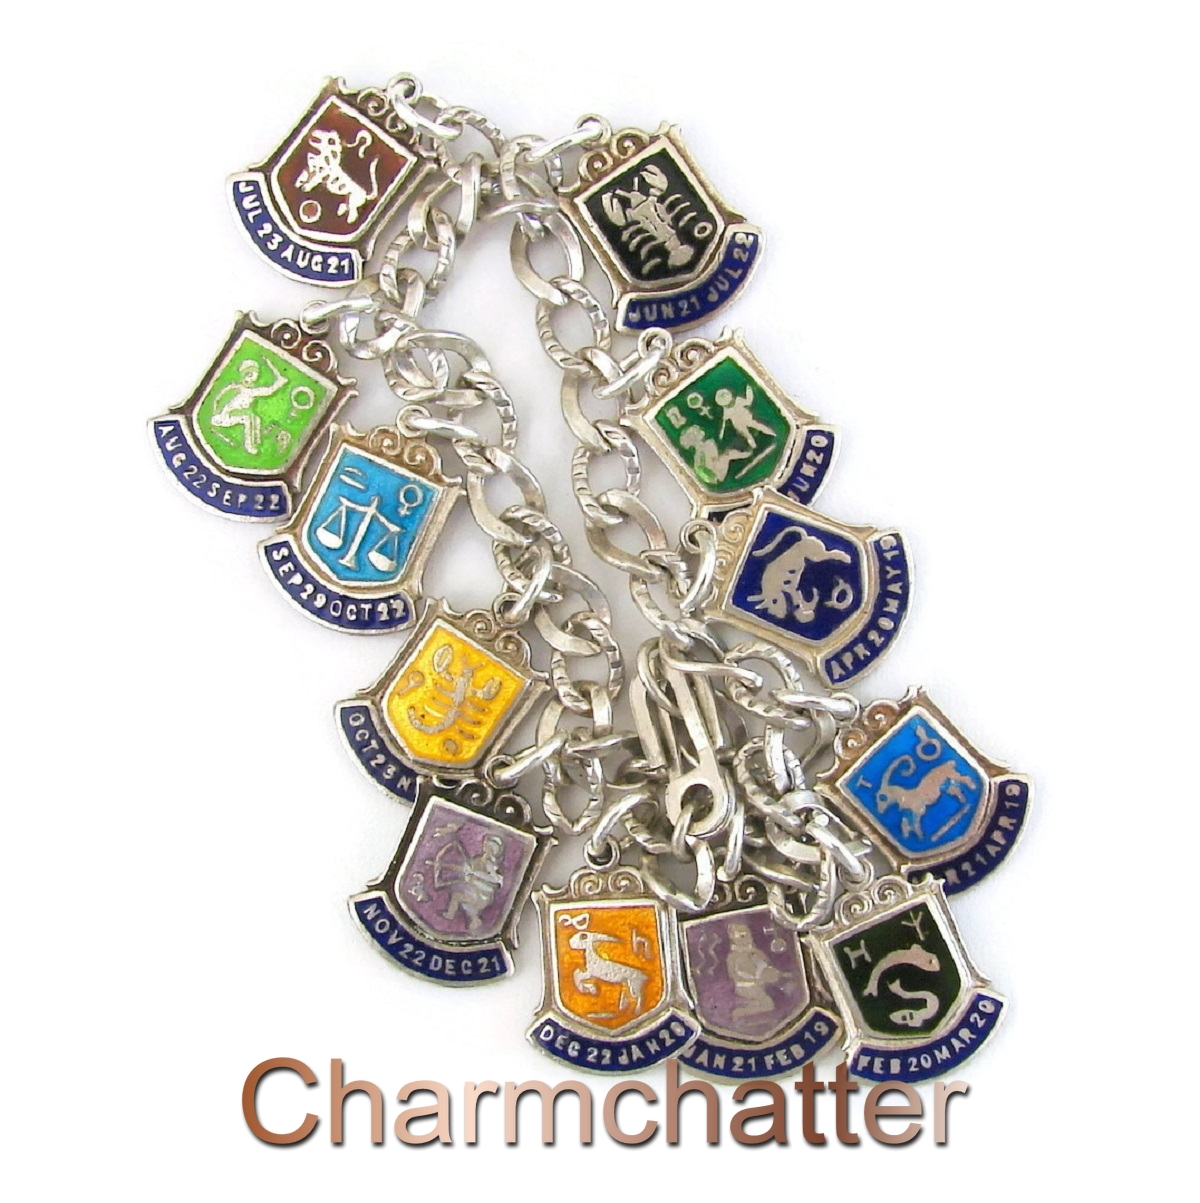 7105058c91e98 CharmChatter Vintage Charms and Charm Bracelets